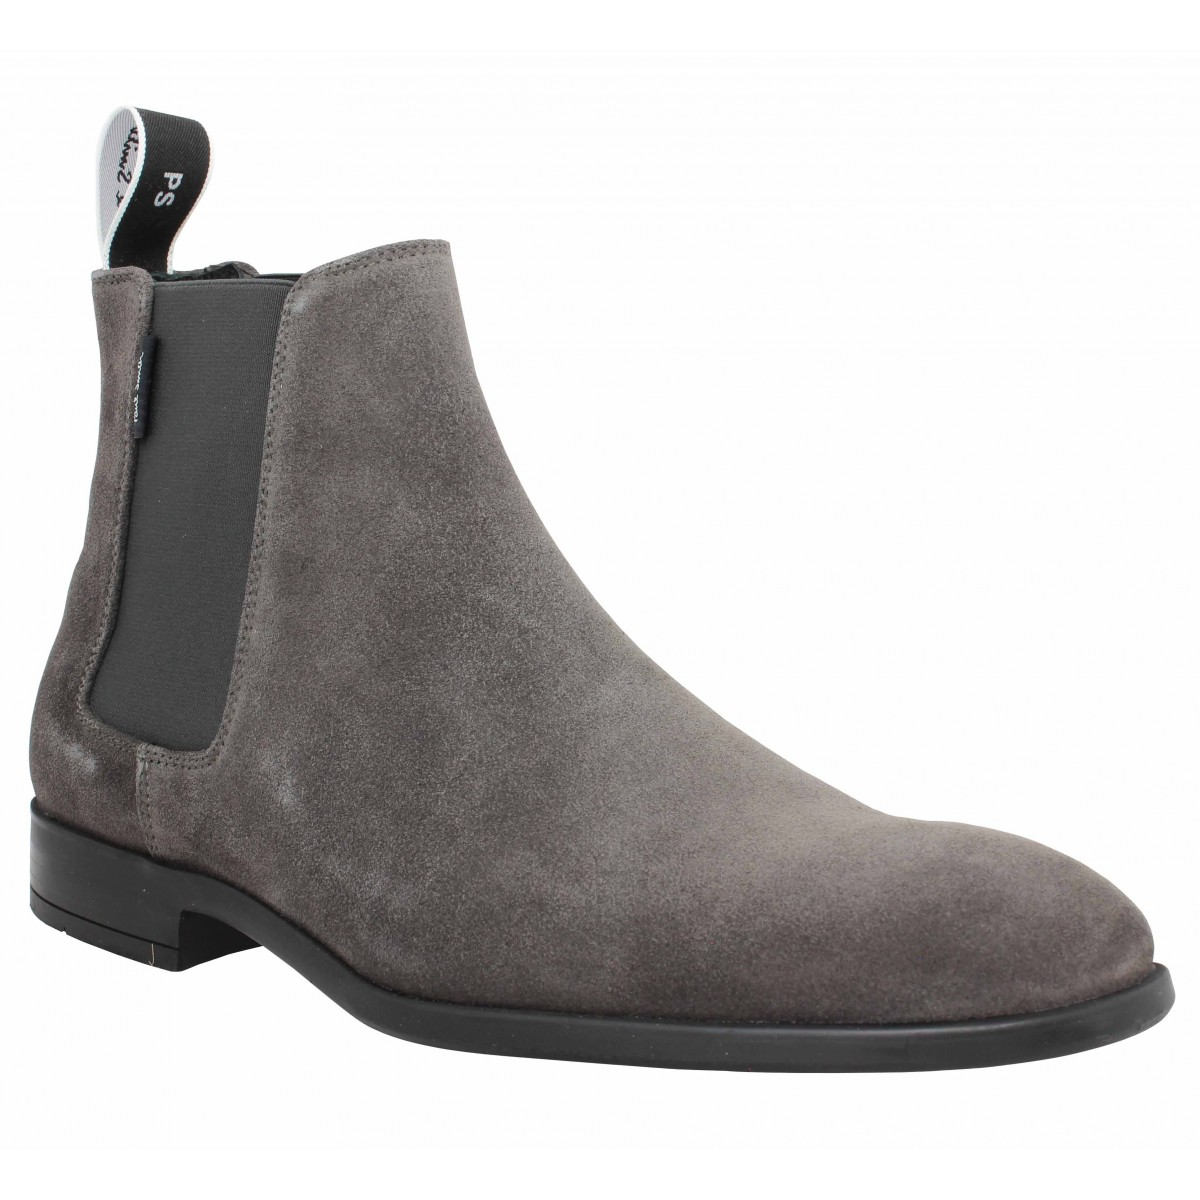 SMITH Homme PAUL Anthracite Gerald velours Ybfyv7I6gm